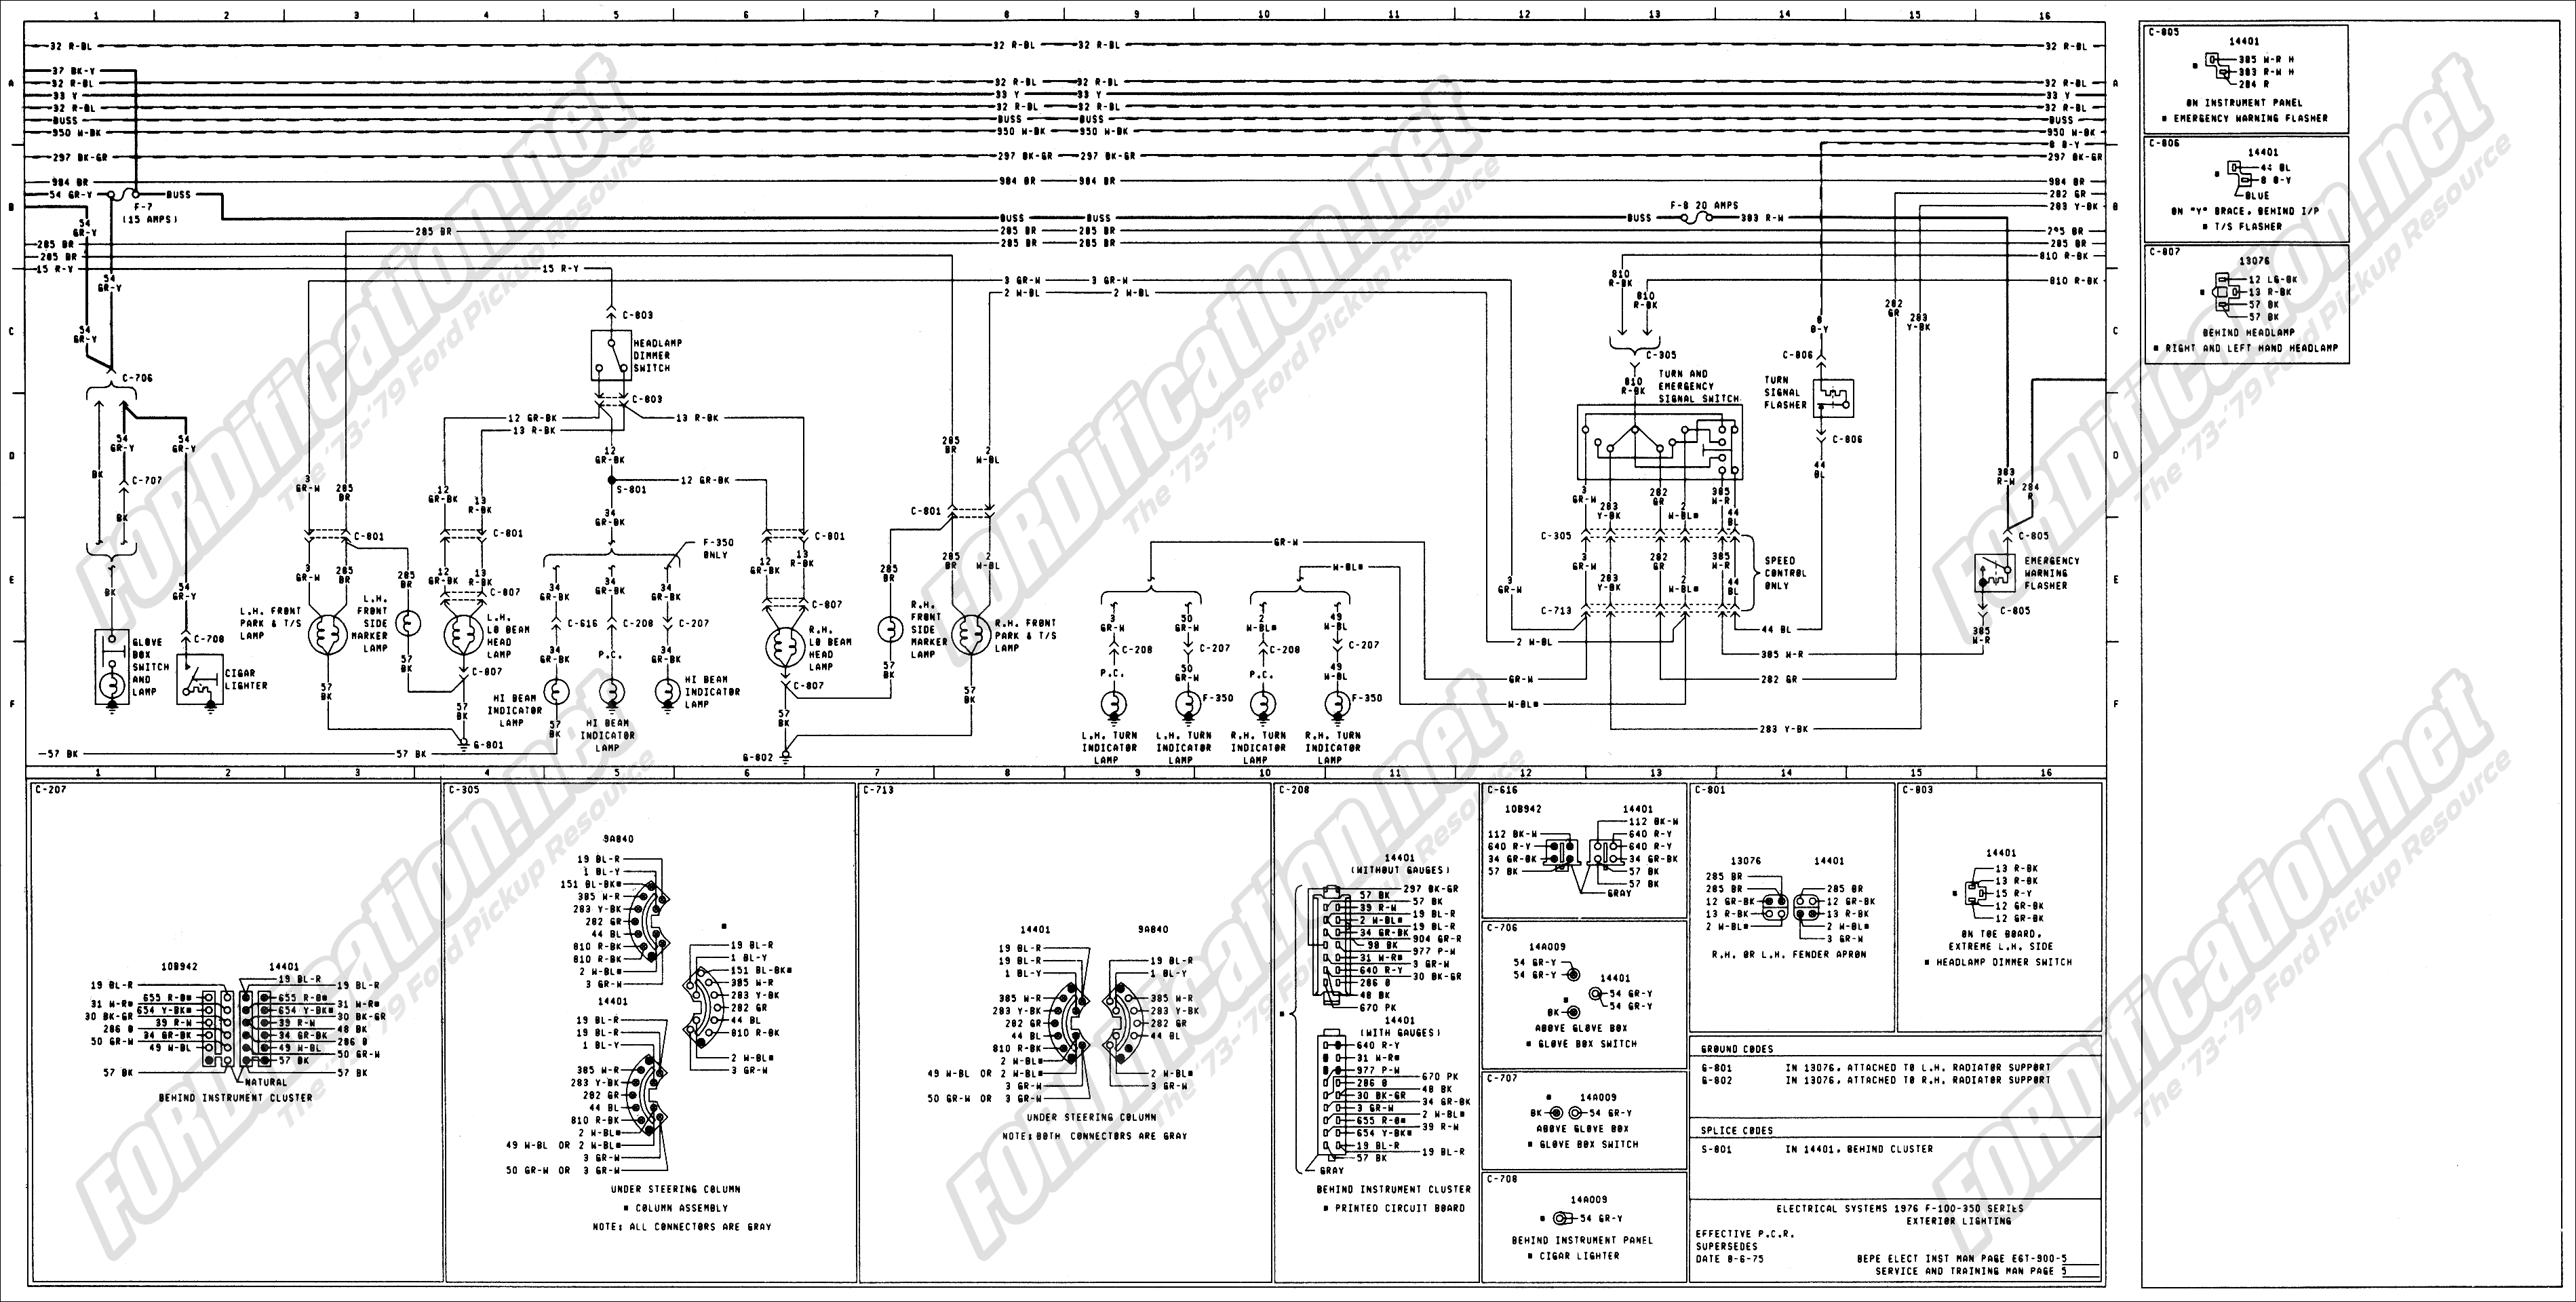 wiring_76master_5of9 1973 1979 ford truck wiring diagrams & schematics fordification net Ford Mirror Wiring Harness at gsmx.co